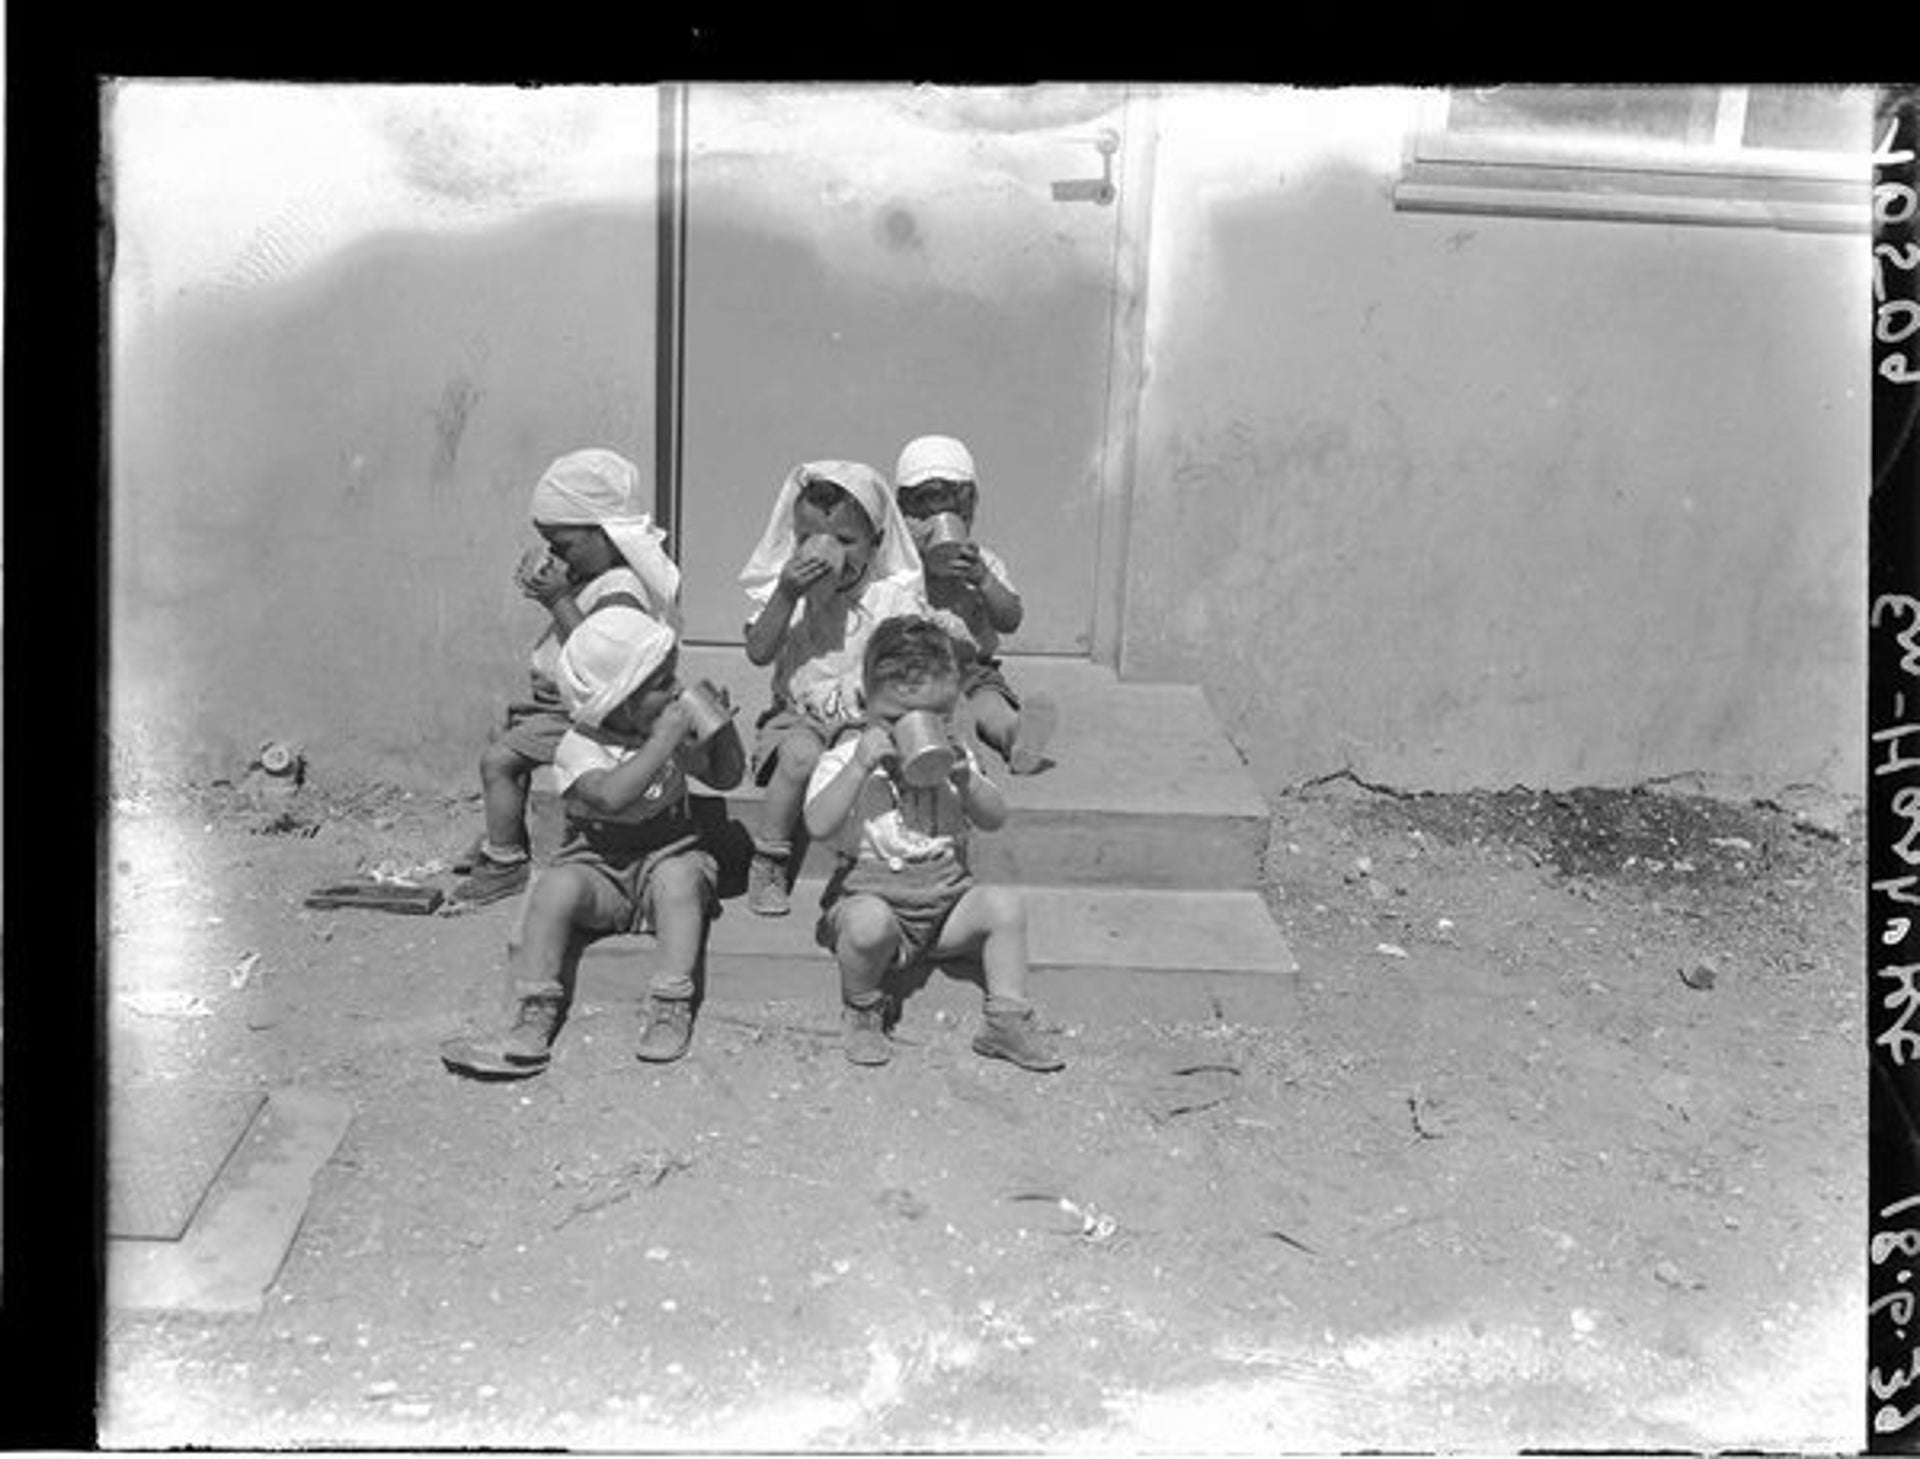 A group of children sitting on steps and drinking from mugs, Kibbutz Ein Hashofet, 1939